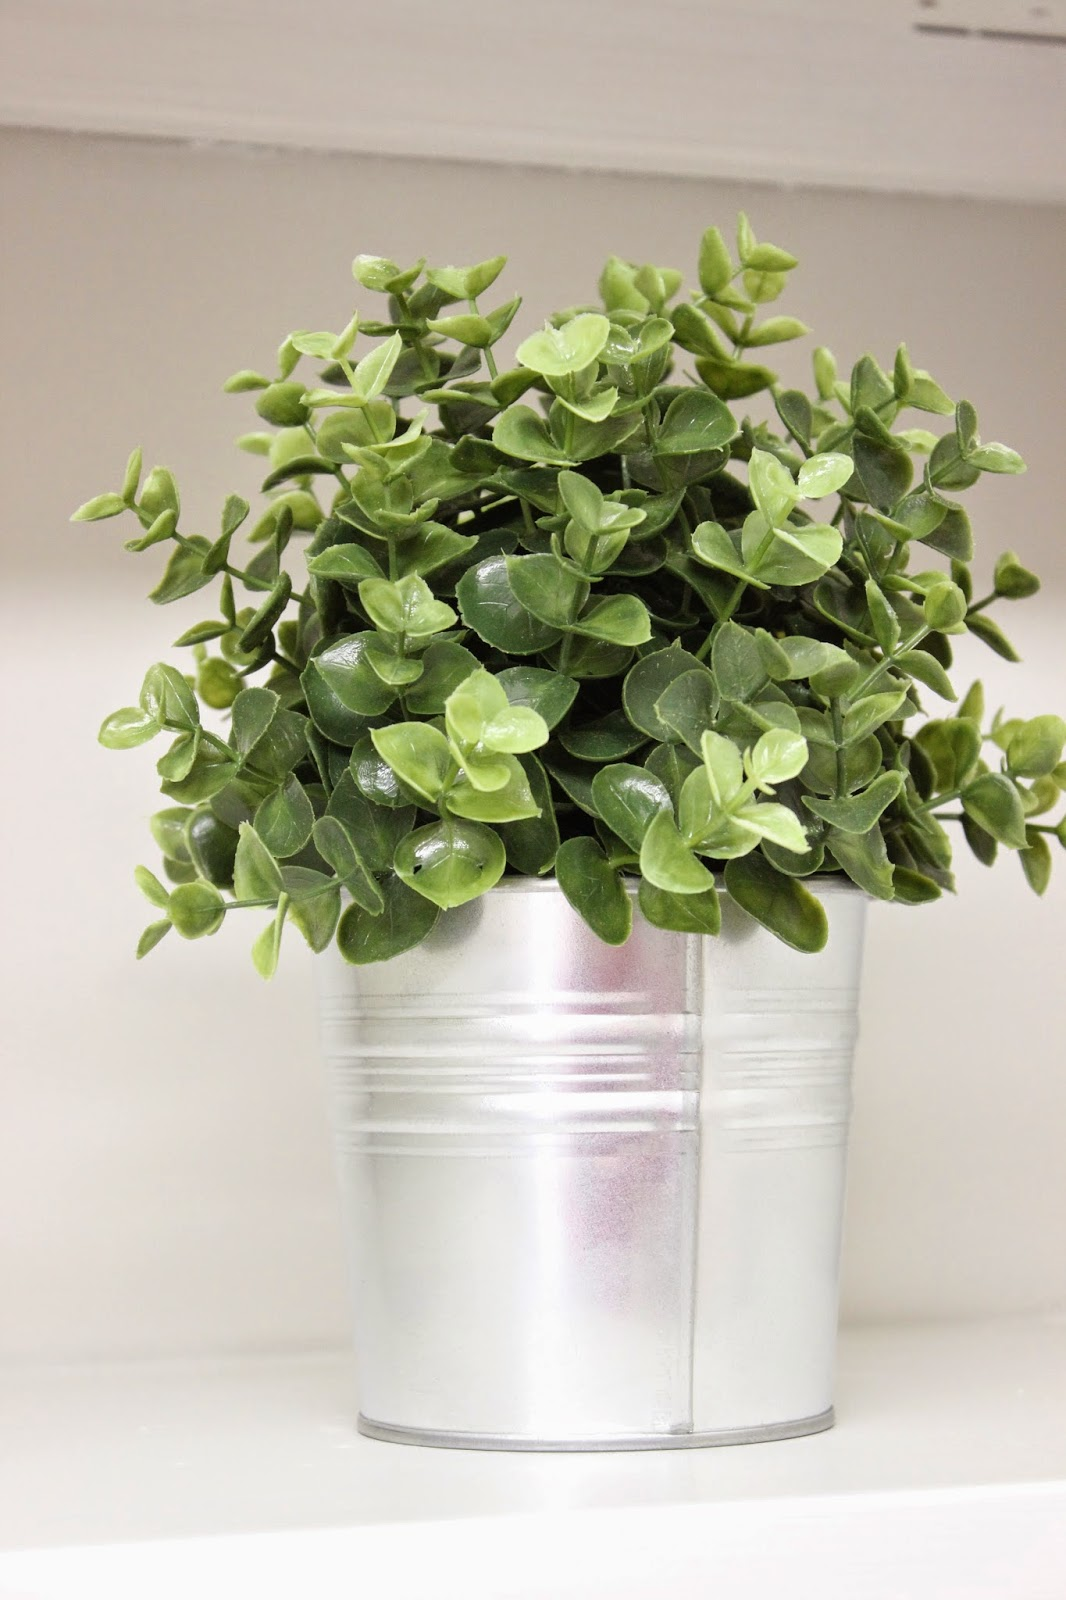 is grows resized been picture closet full to cannagraphic sized image the view grow soil has international original this indoor showthread plant bar ic click